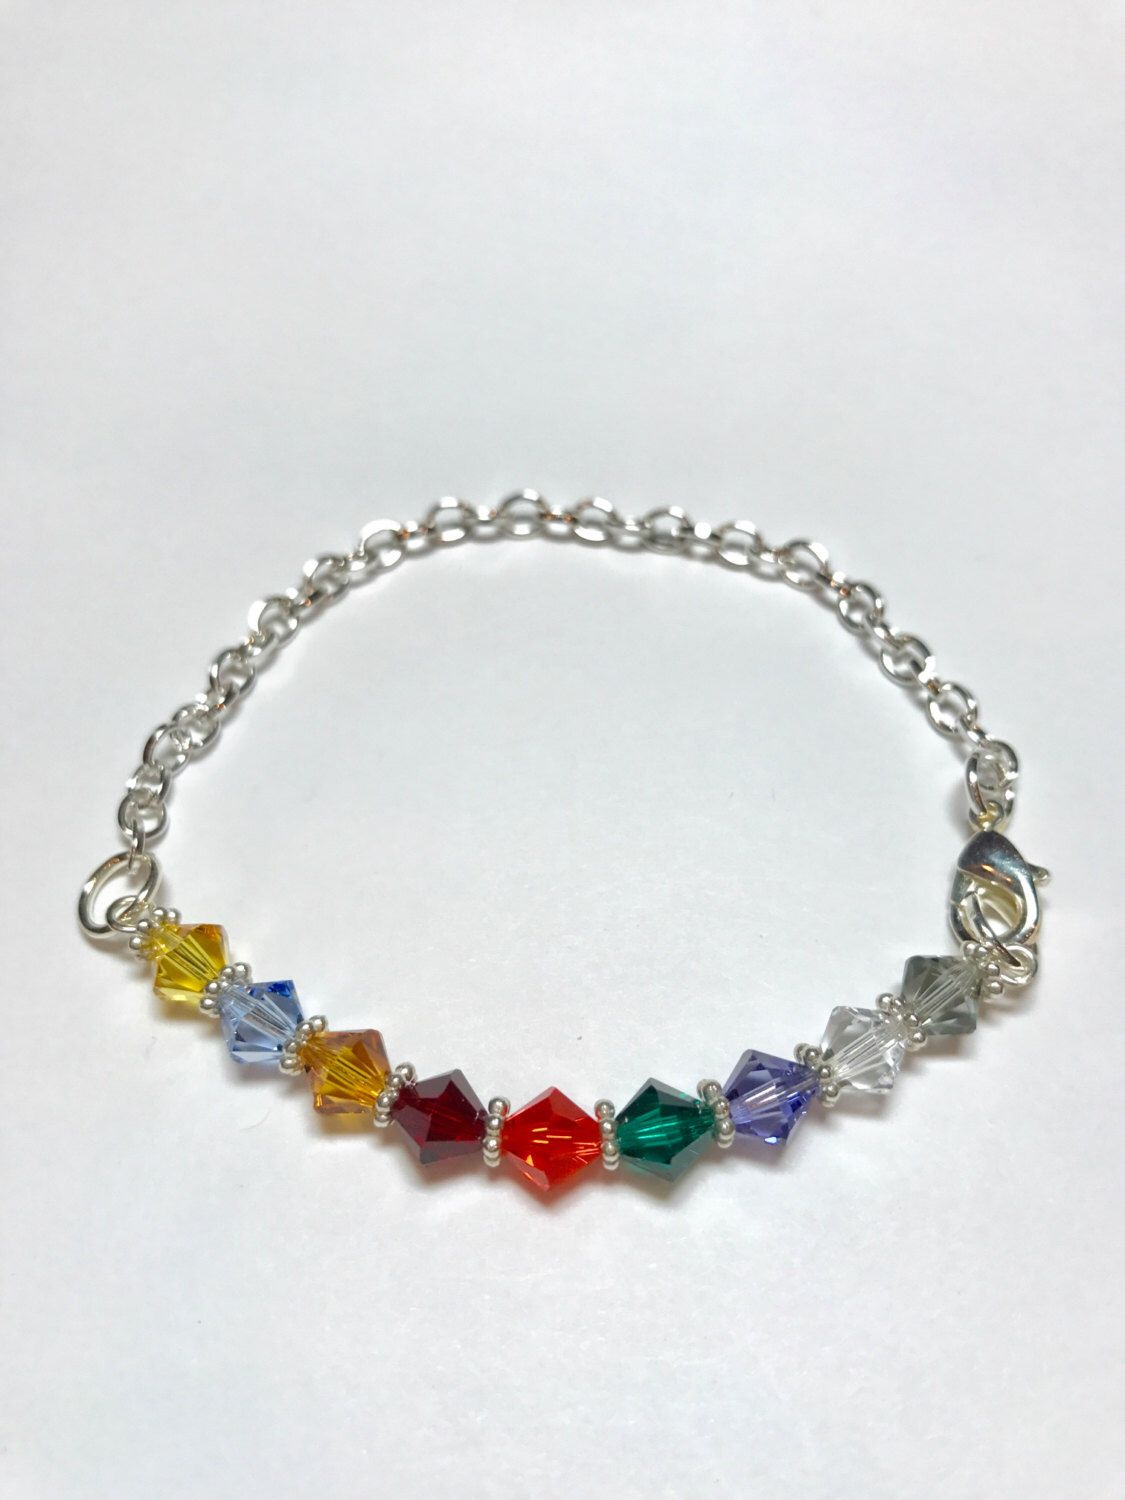 Phlebotomy Order Of Draw Bracelet For The National Board